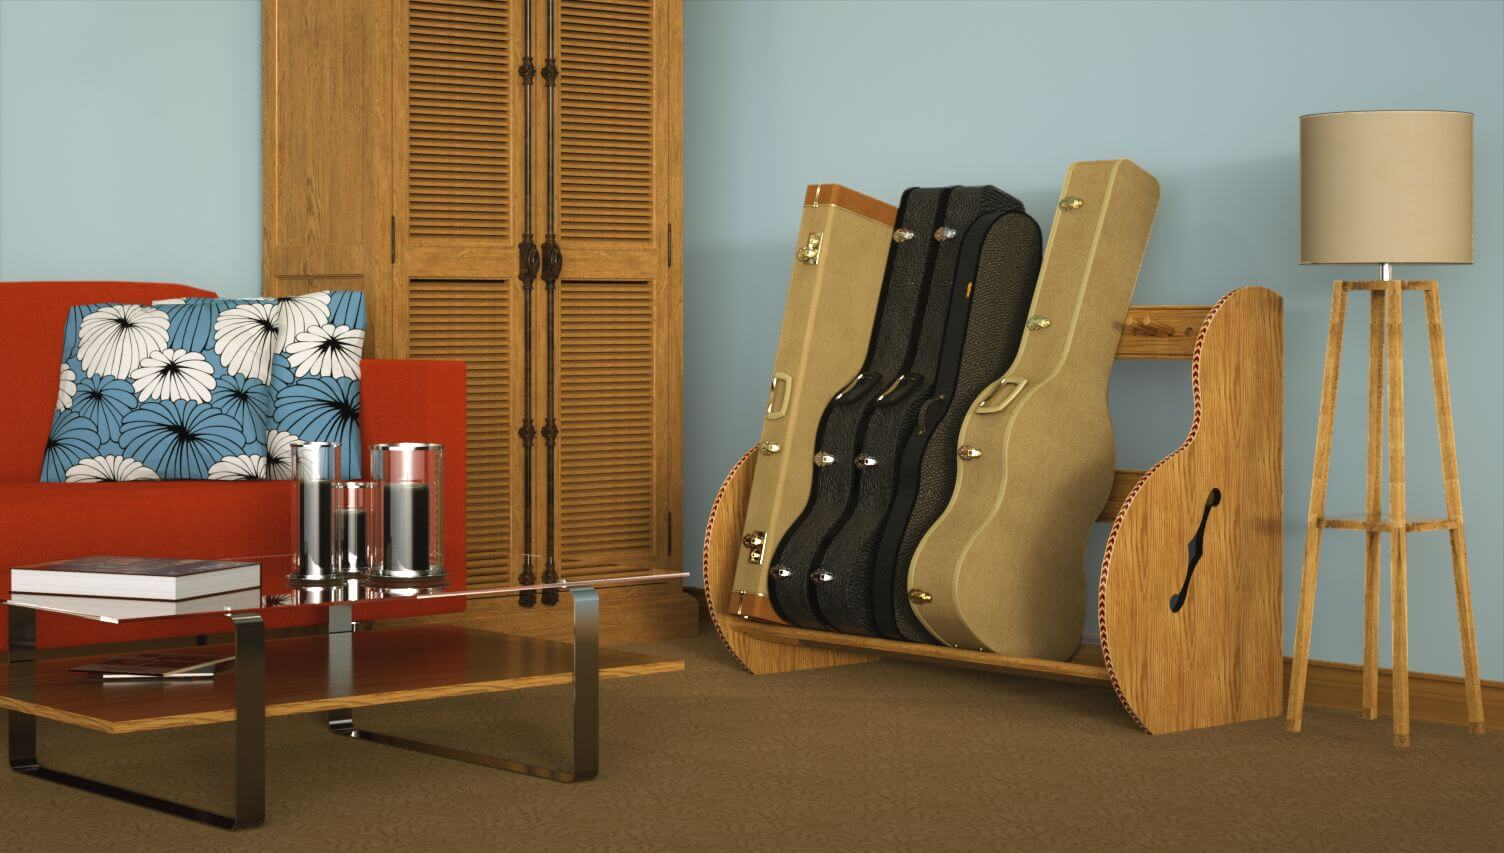 Guitar Storage Solutions For Musicians & Collector